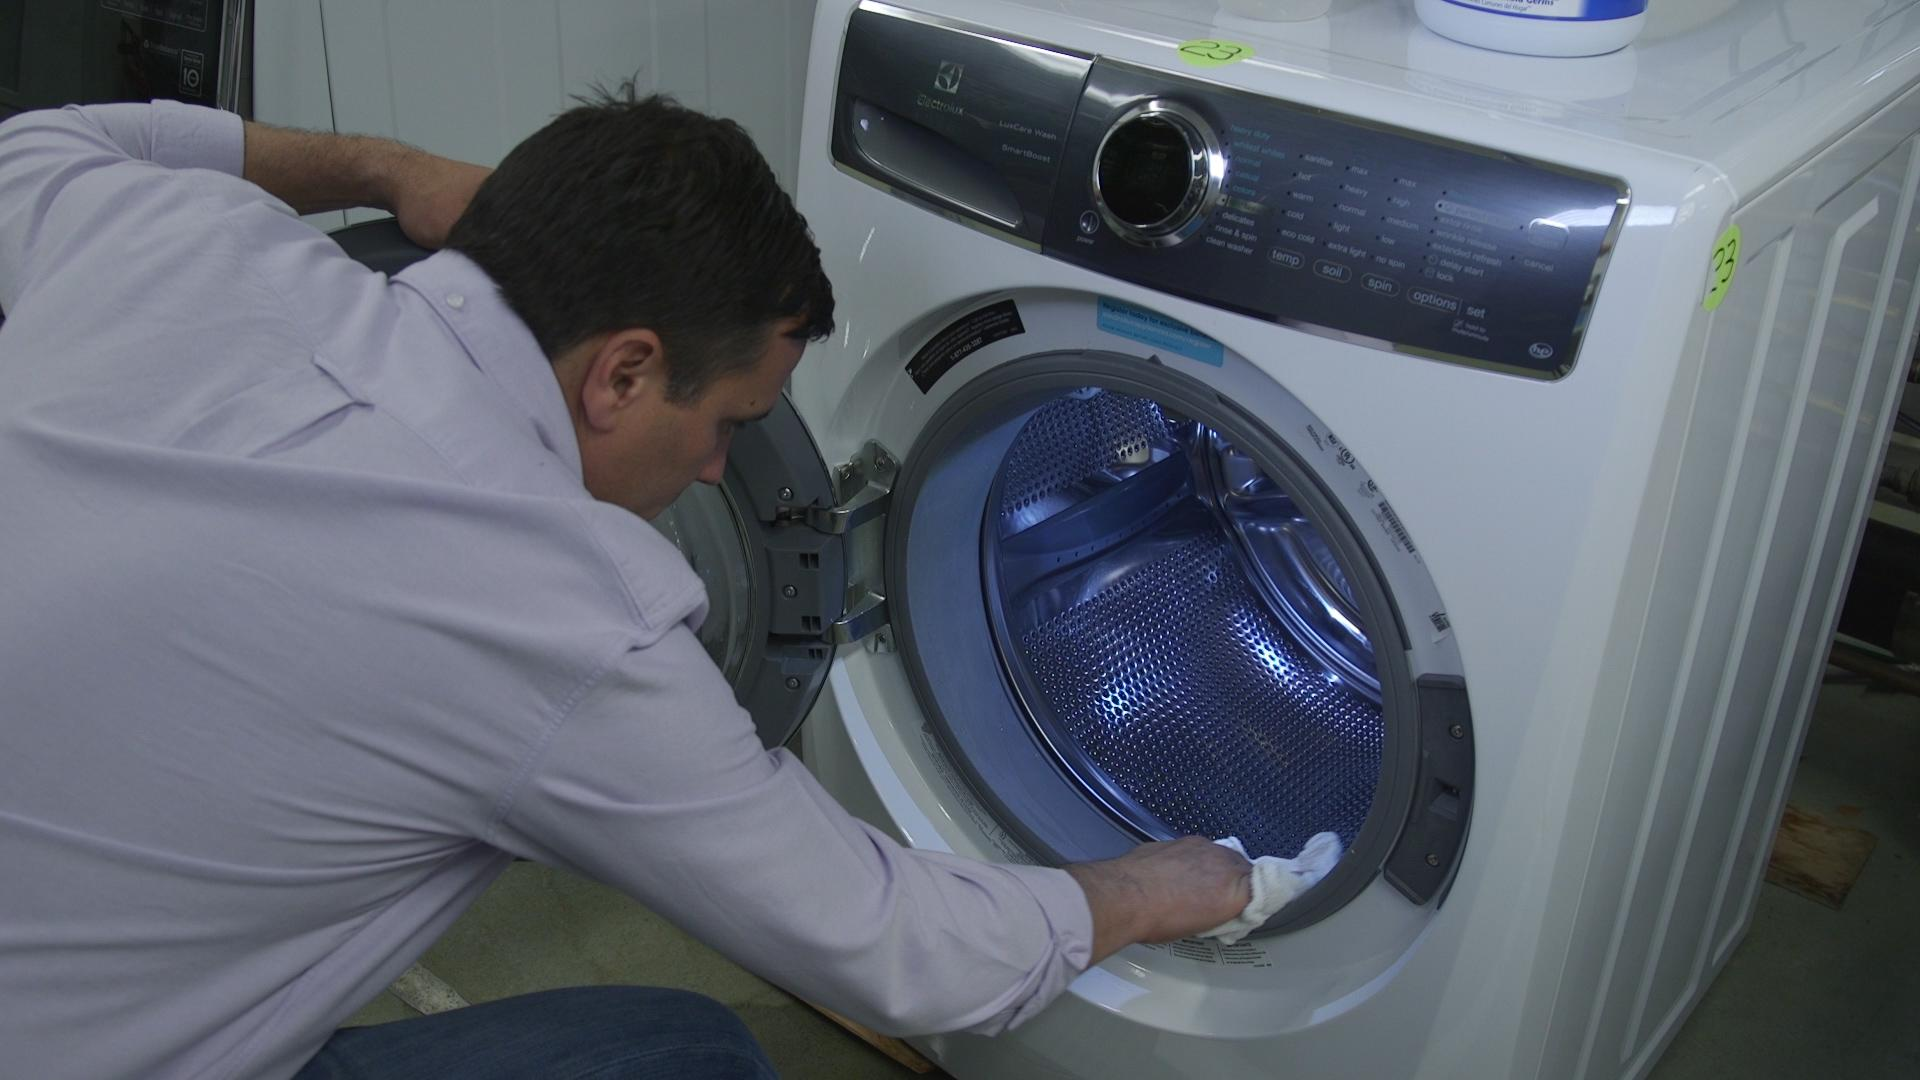 How To Clean Your Washing Machine Consumer Reports